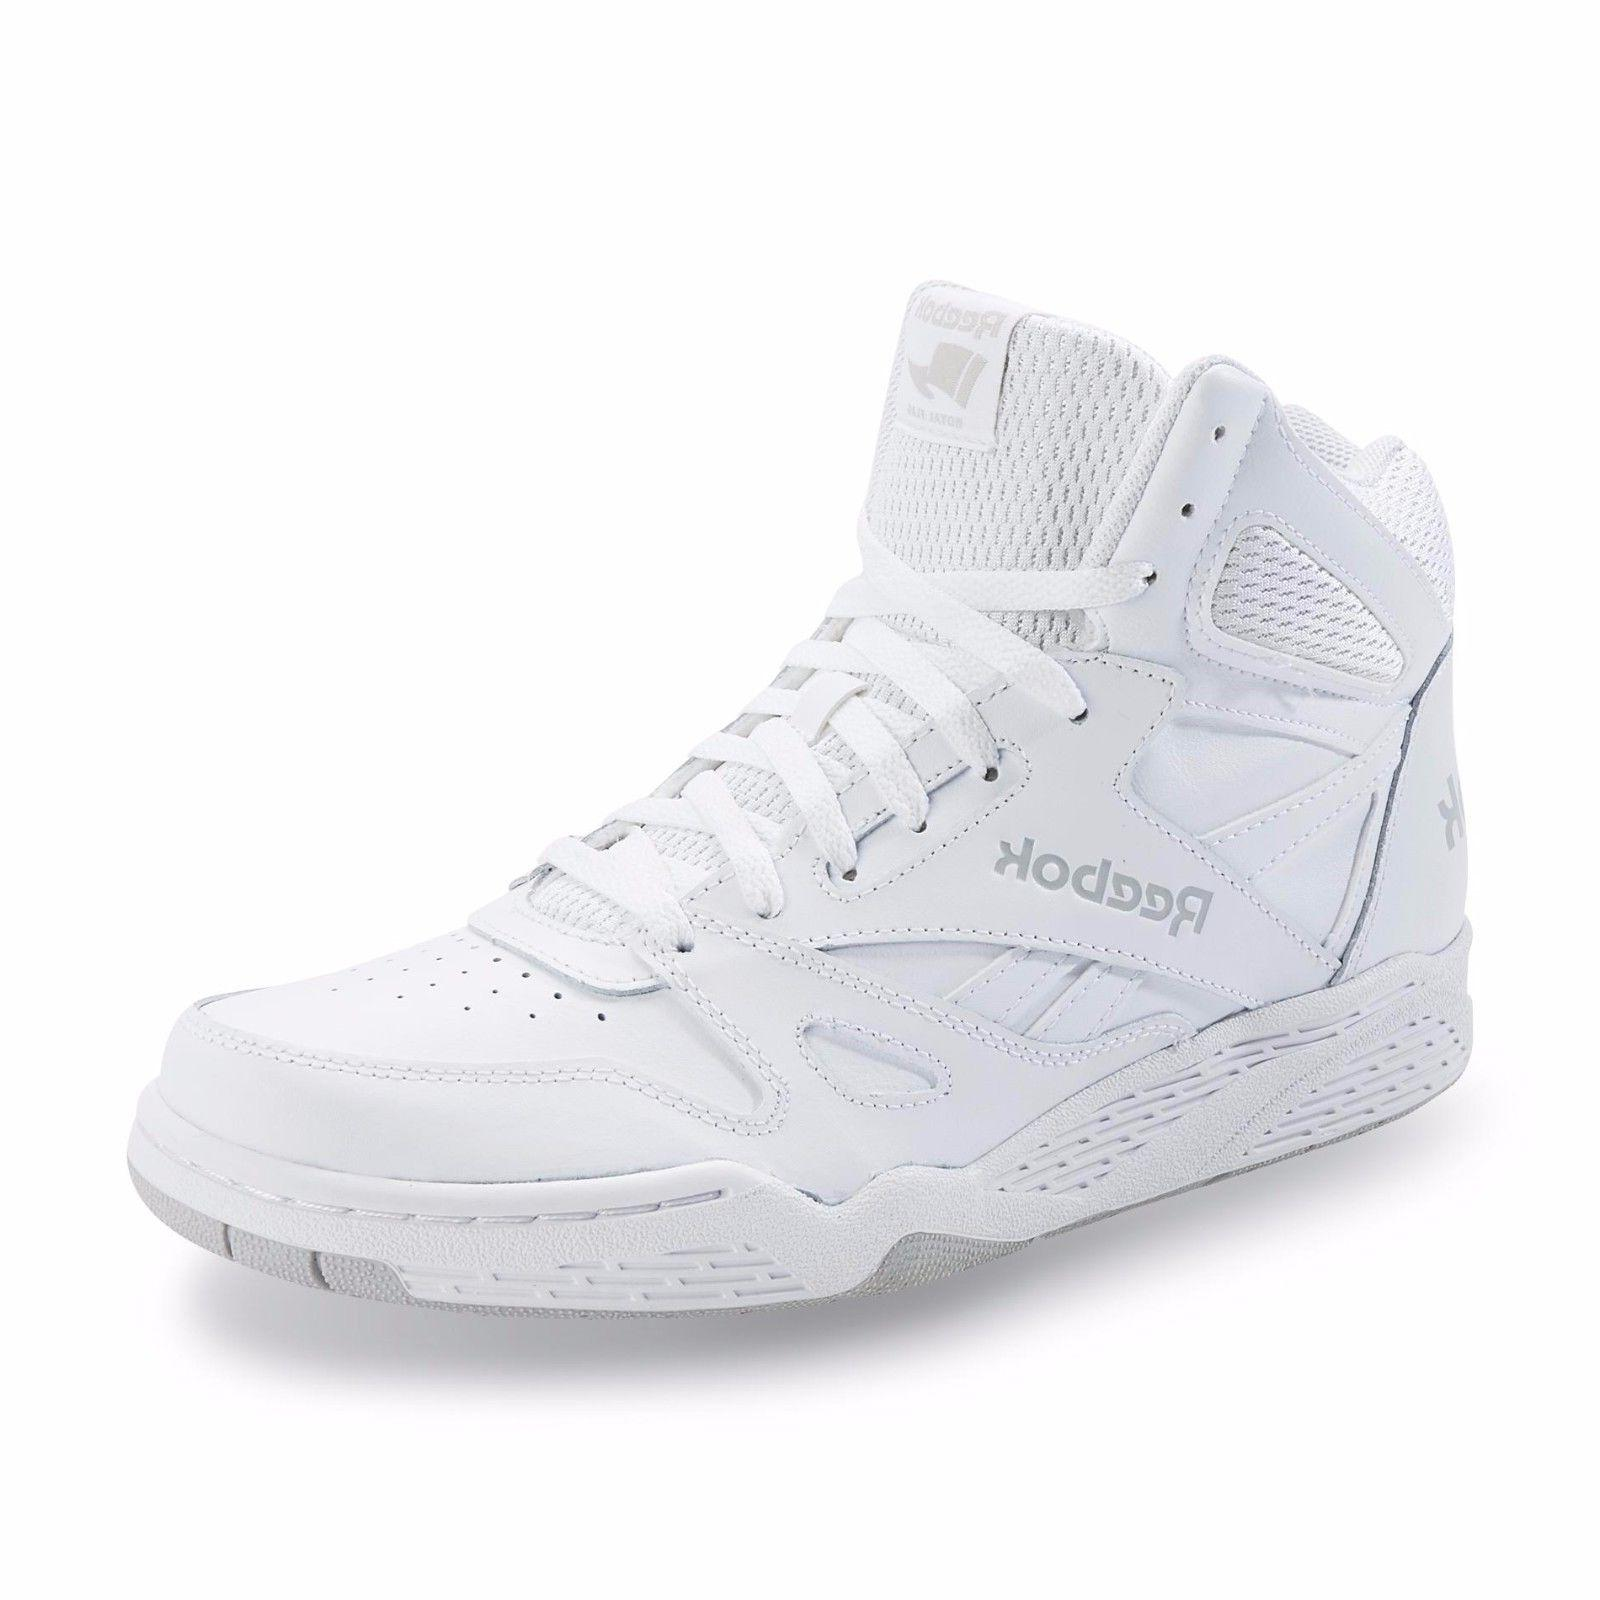 Reebok Men's Royal BB4500 Leather High-Top Basketball Shoe v